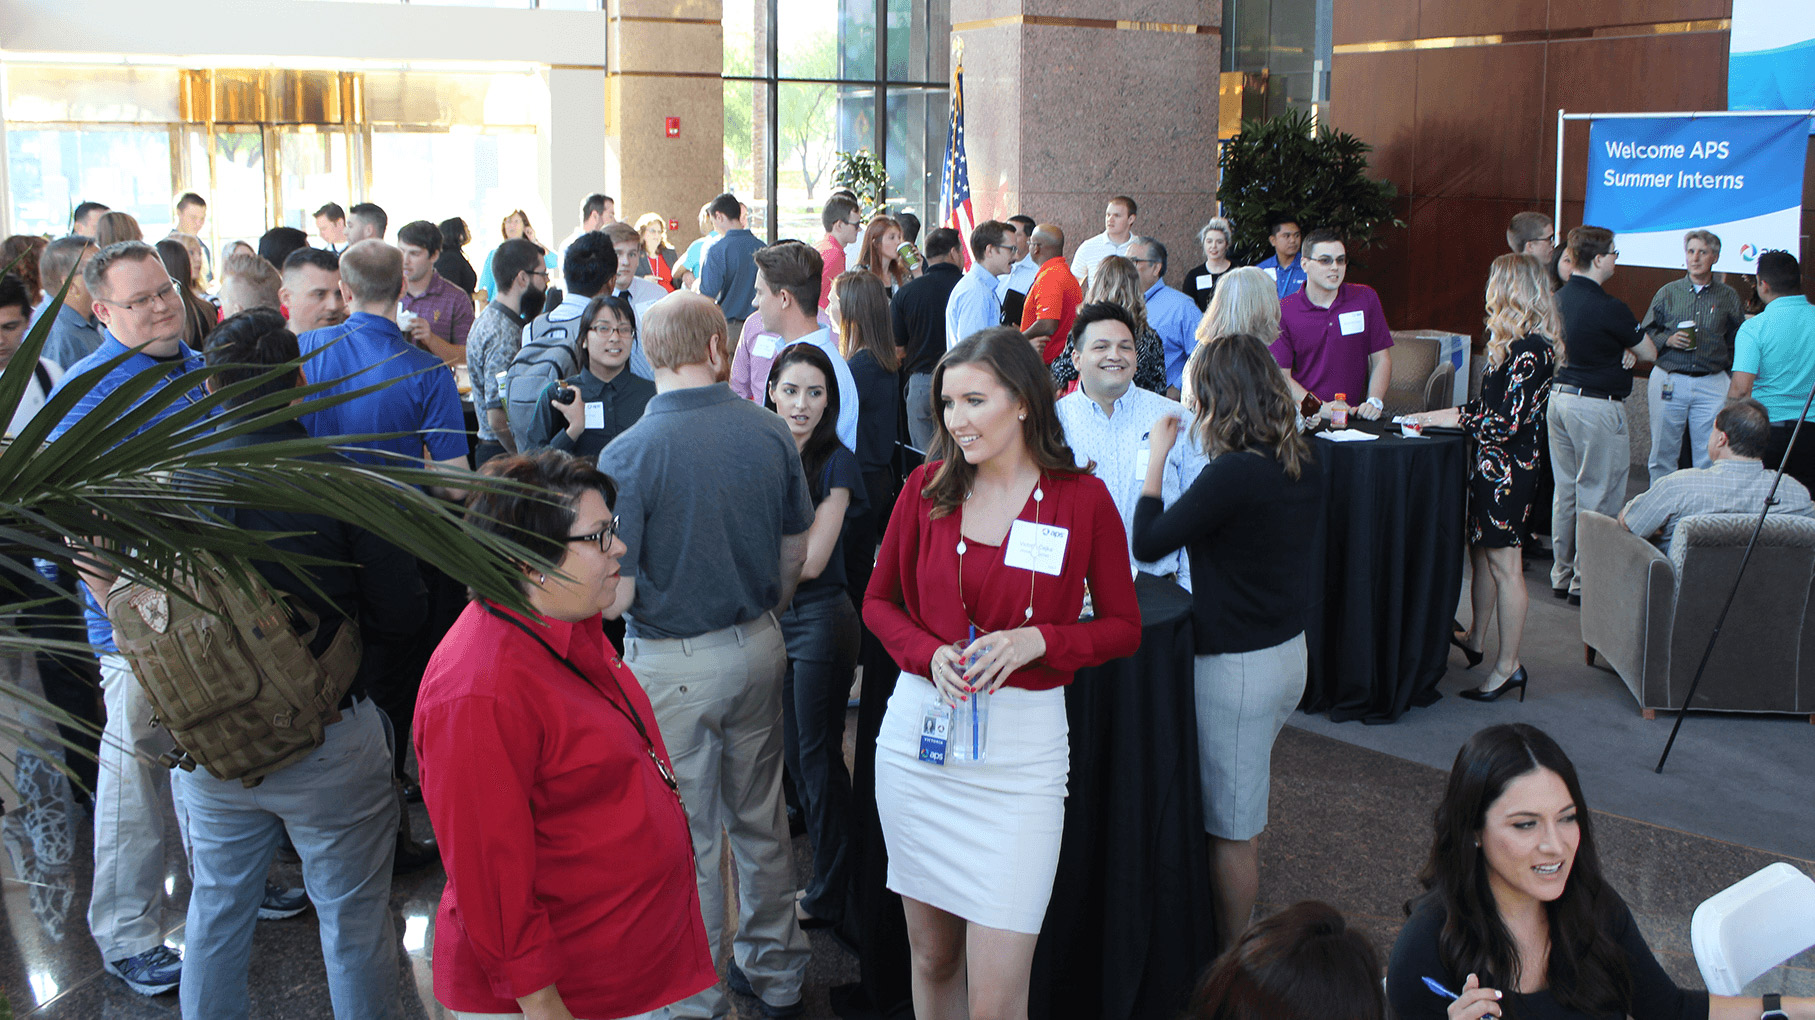 APS interns and employees talking at the summer internship welcome event.